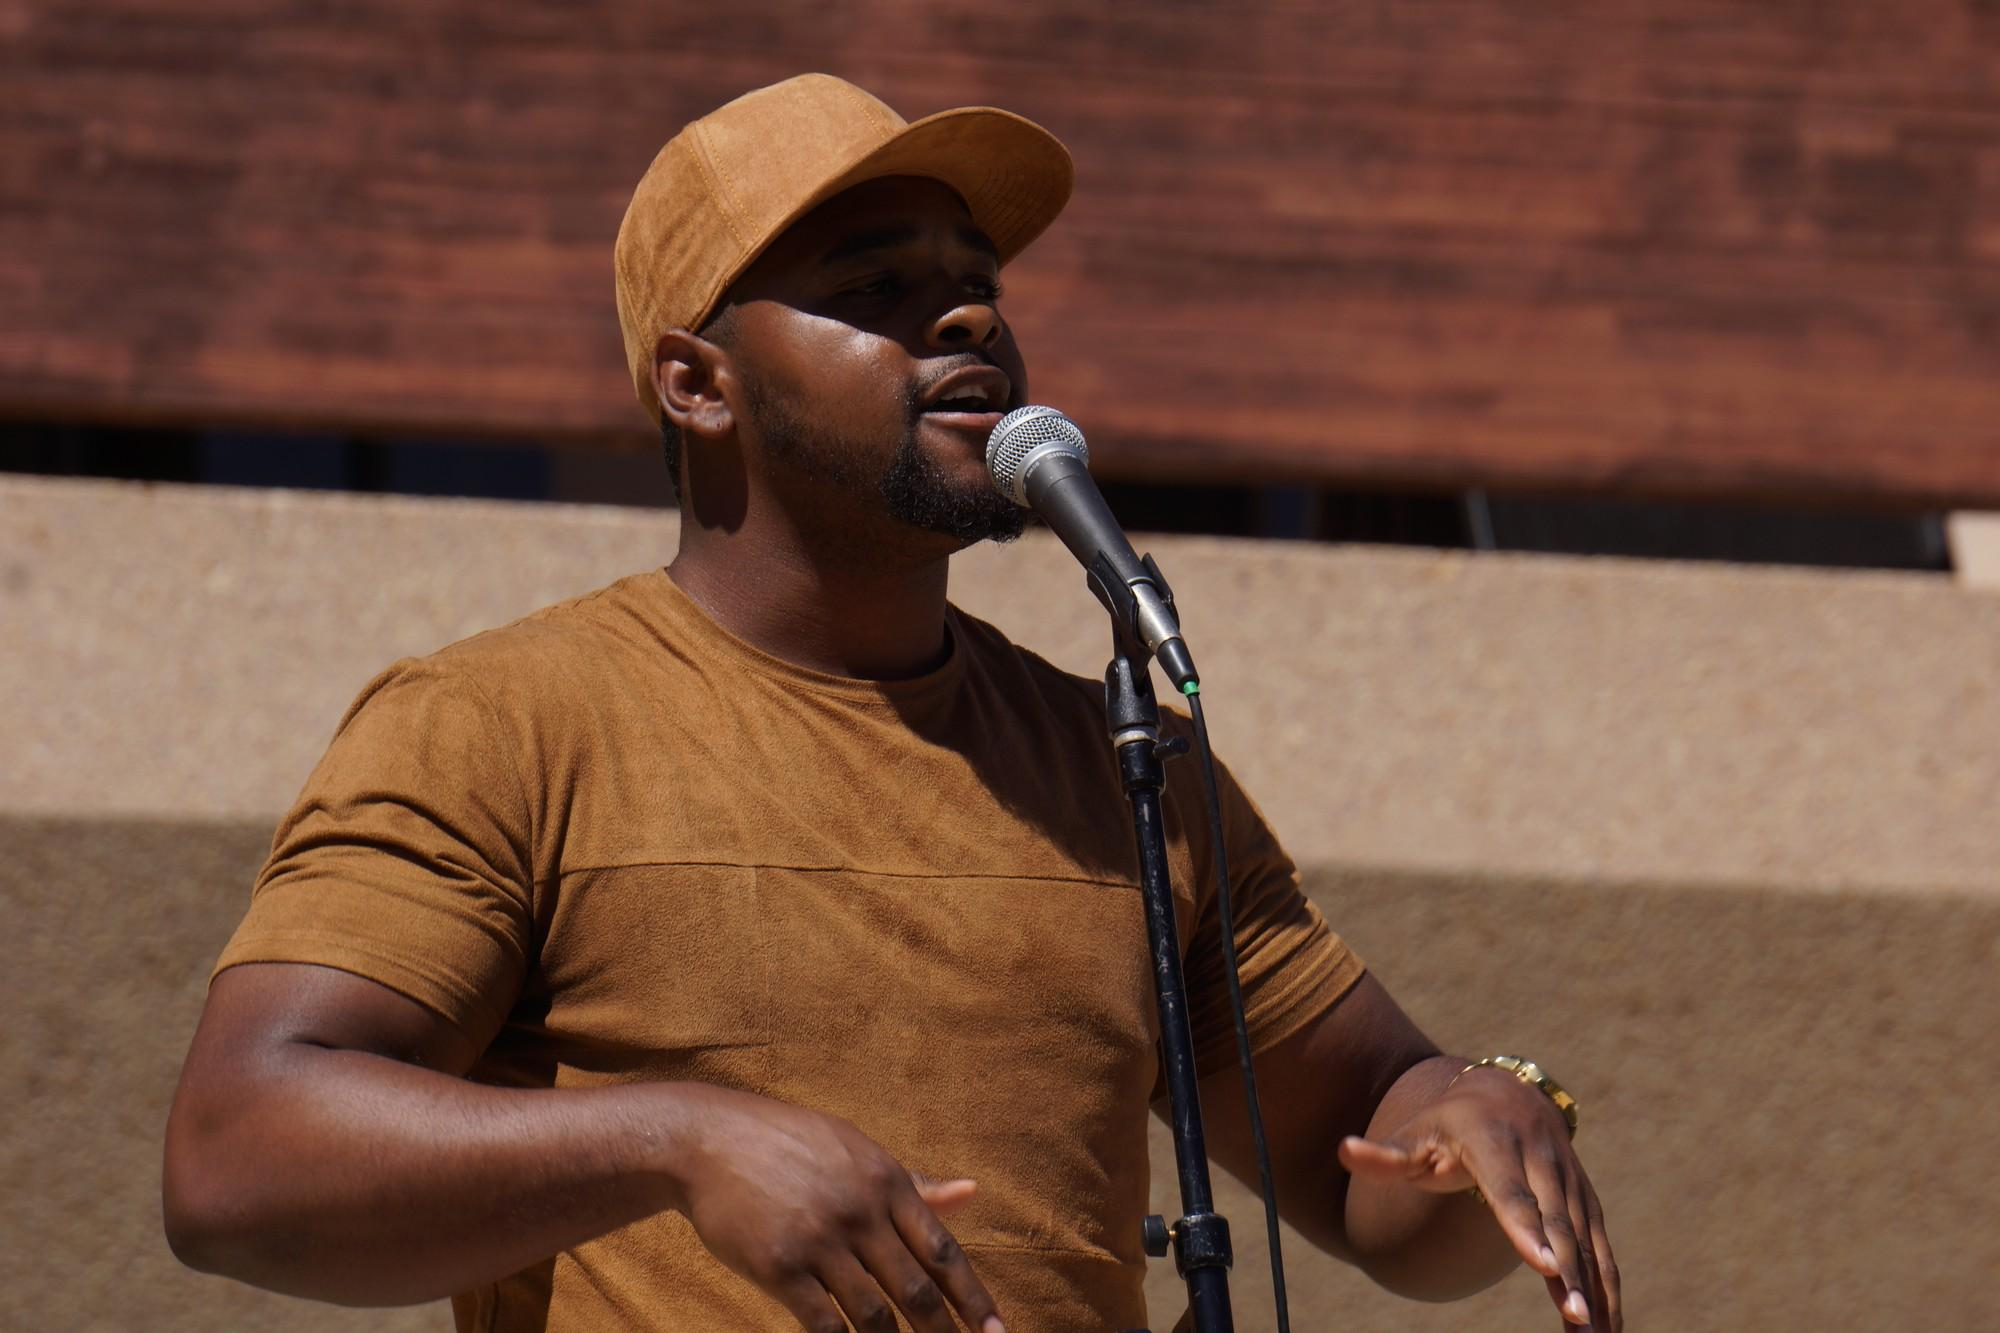 World Play, Caleb Word, 24, performing outside the Oviatt Library on April 20, 2017 for Poetry Palooza. The dream for Word, is to be on that